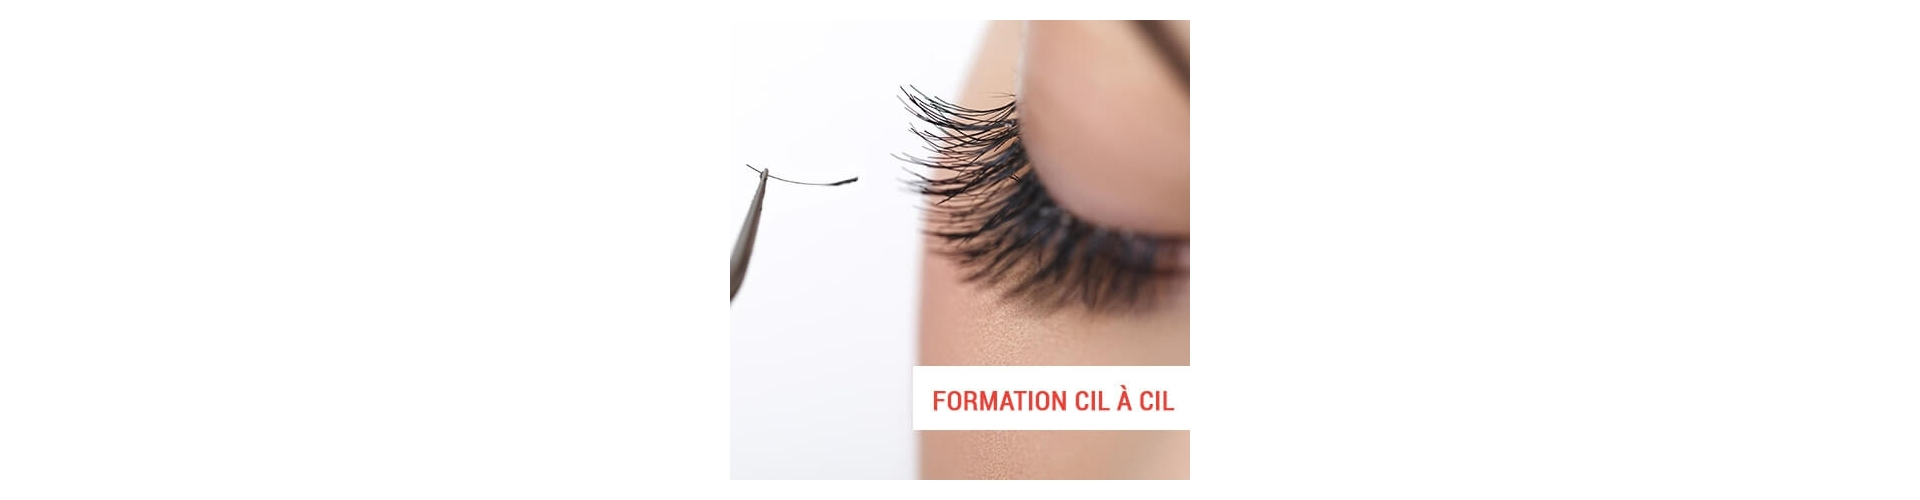 Learning how to improve the aspect of eyebrows & lashes? Come to train